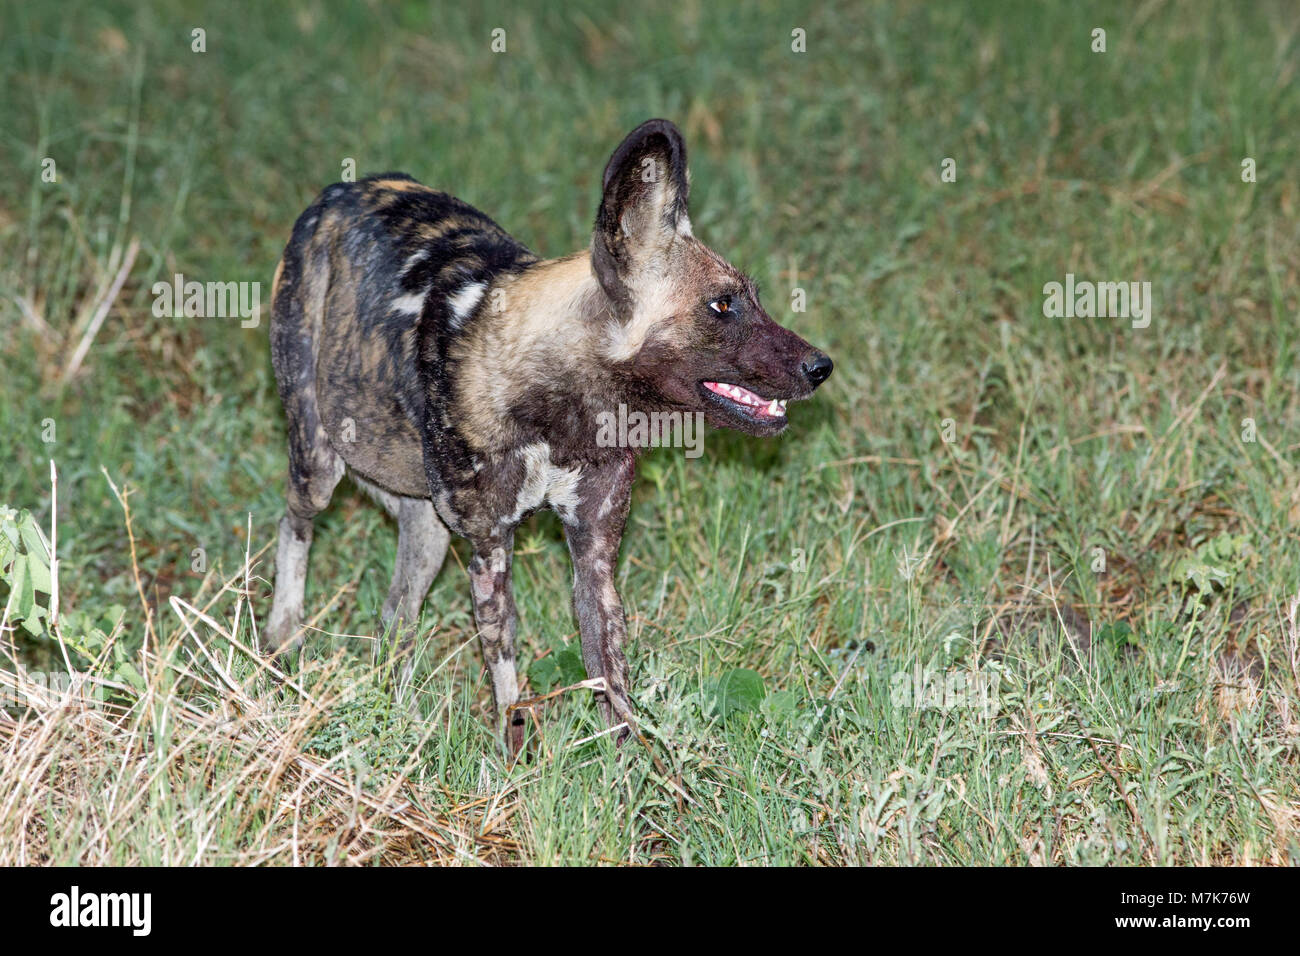 African Hunting Dog, or African Wild Dog or African Painted Dog or Painted Wolf (Lycaon pictus). Bloated, expanded - Stock Image